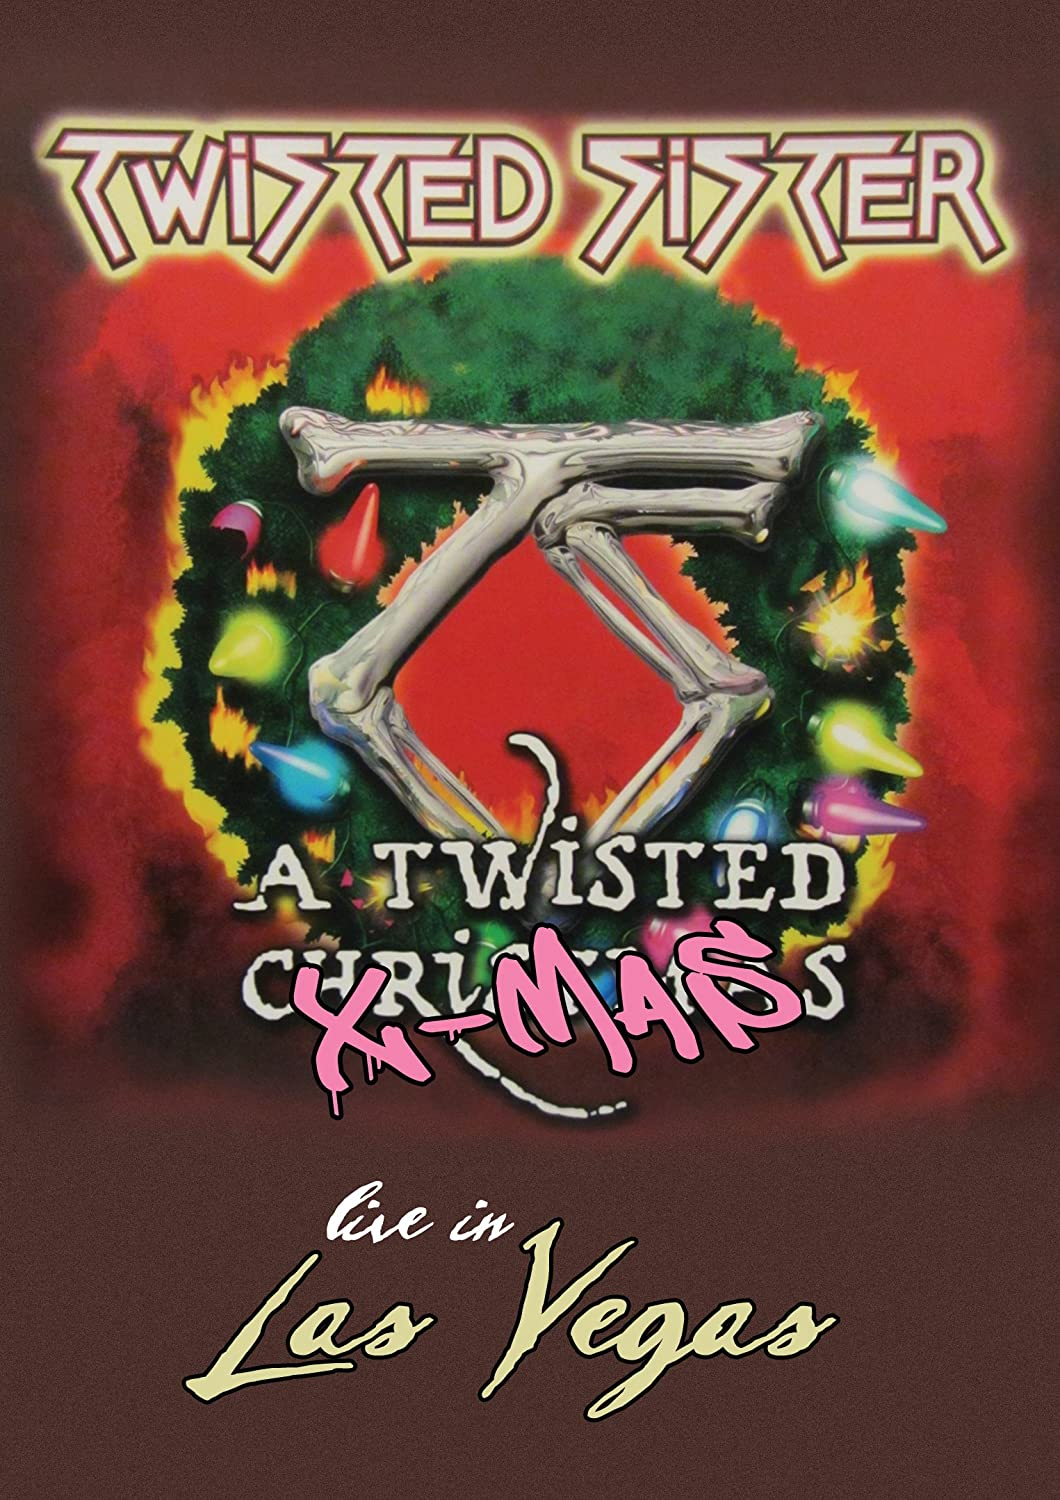 Amazon.com: Twisted Christmas: Live in Las Vegas: Twisted Sister ...